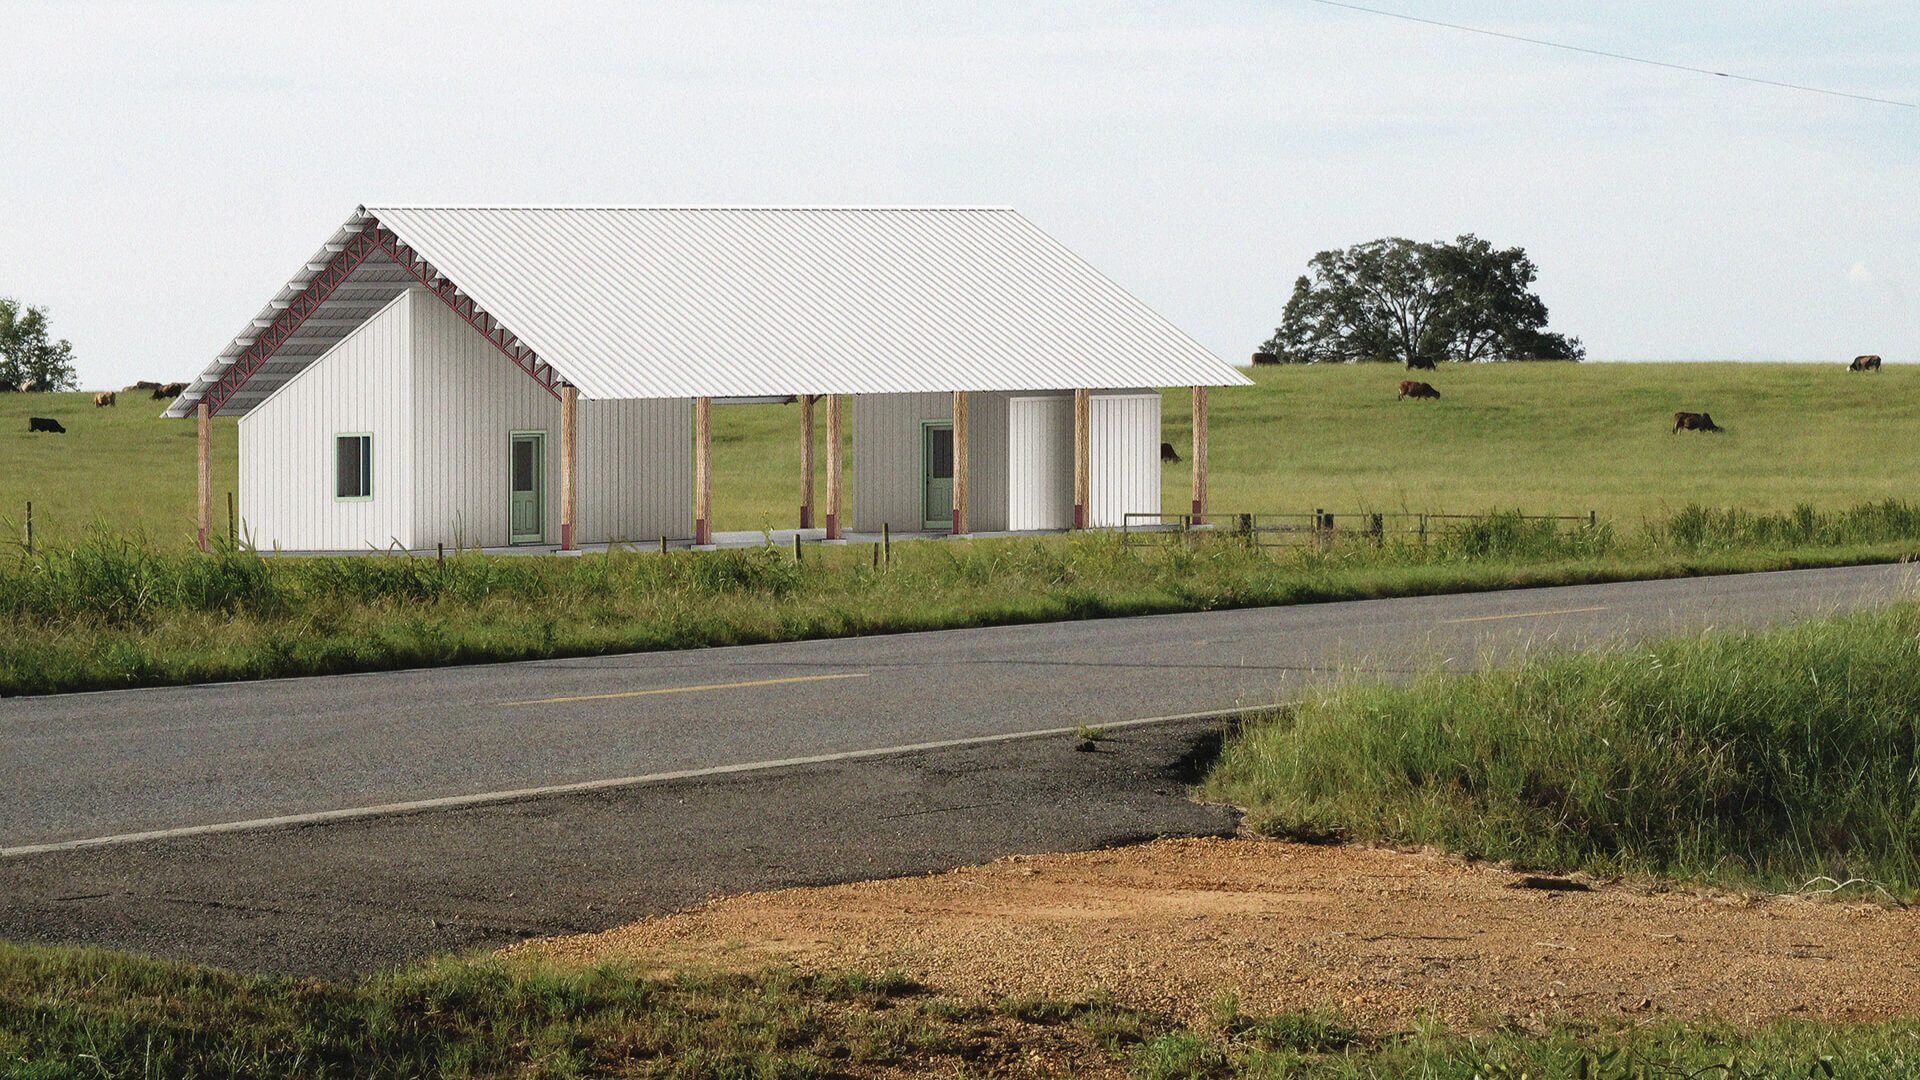 Rural Studio's kit house prototype project rendering pictured in an ideal setting | Kit House by Rural Studio | STIRworld